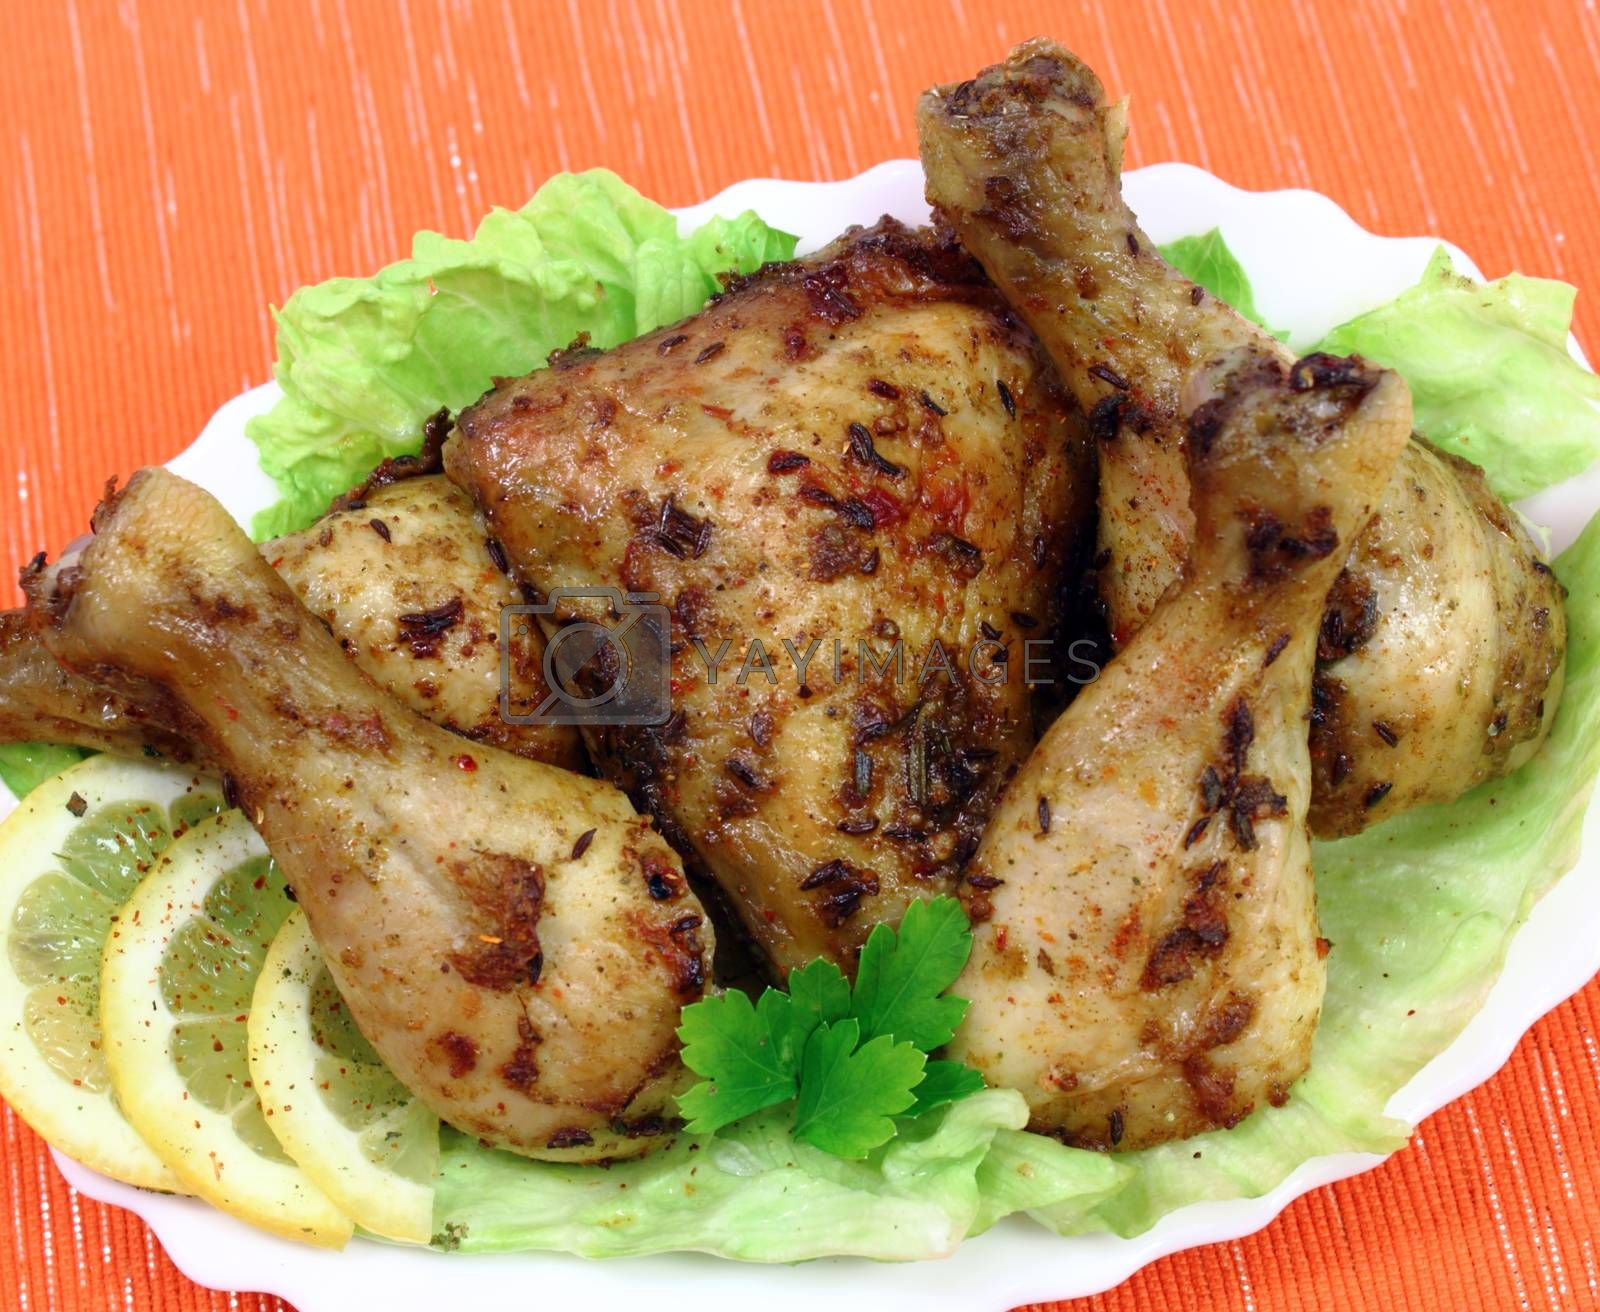 Royalty free image of Roasted chicken drumsticks by openas